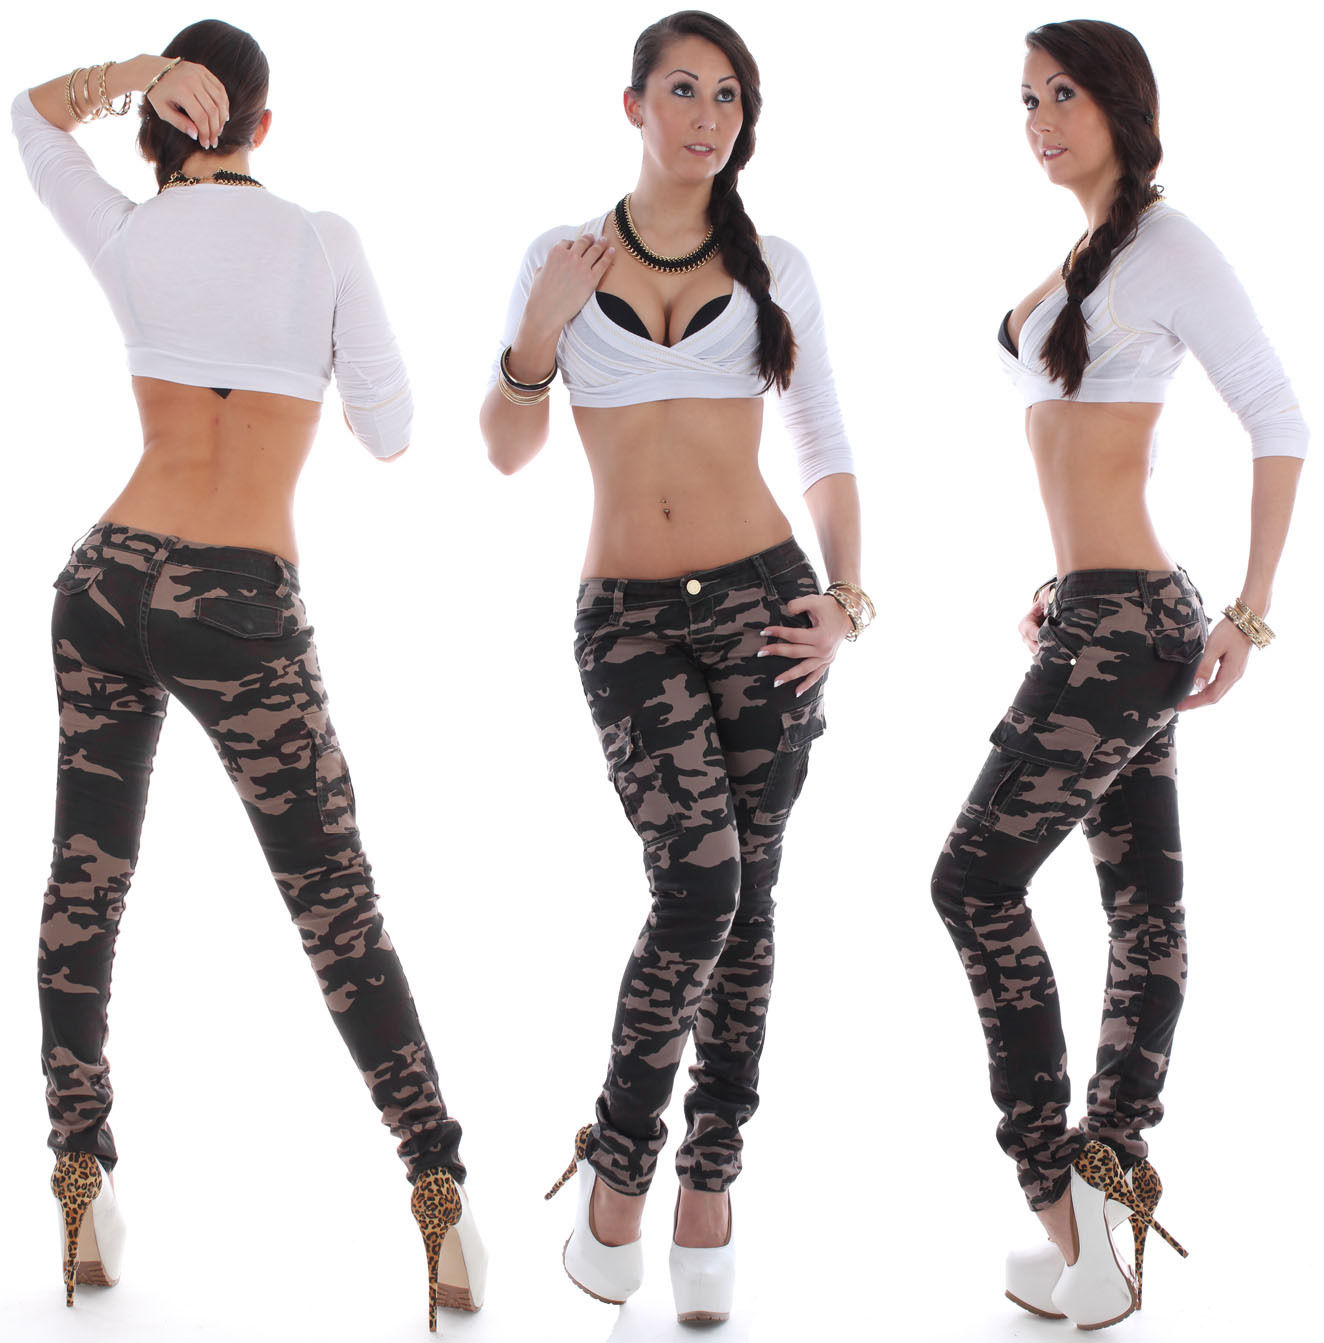 Jeans For Women Jeans For Women Trousers Cargo Pants Camouflage